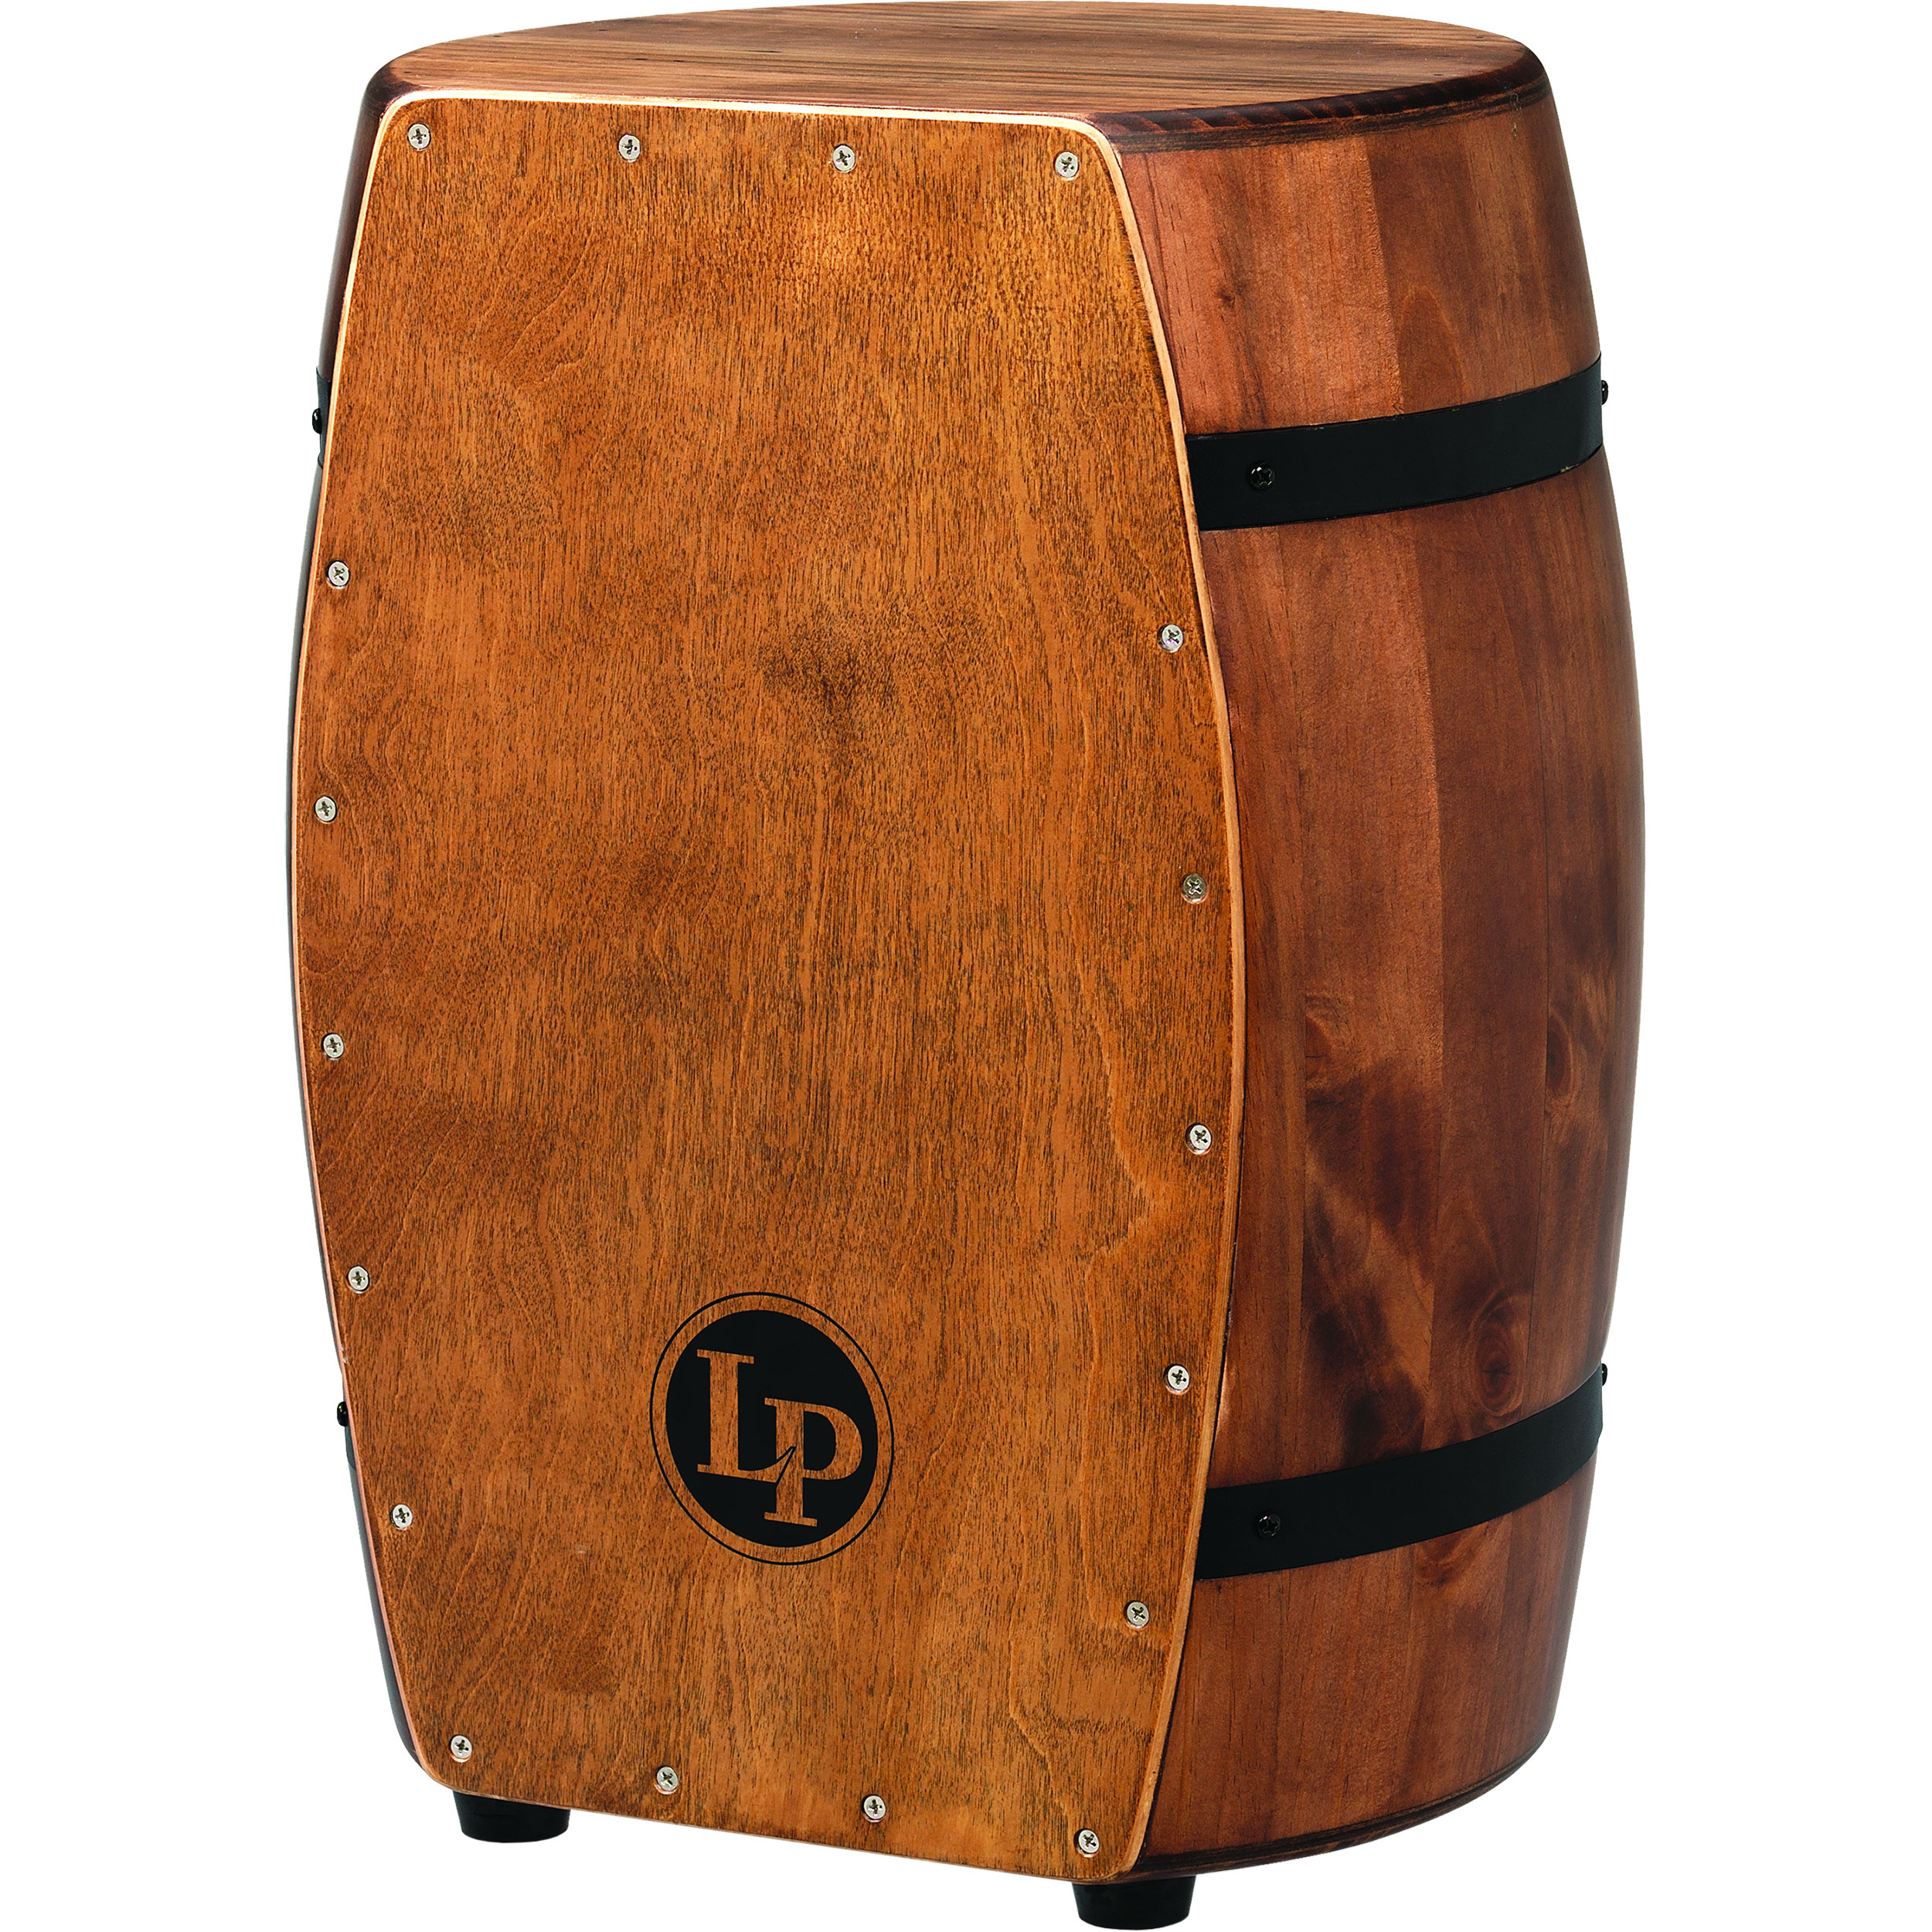 LP Matador Whiskey Barrel Tumba Cajon